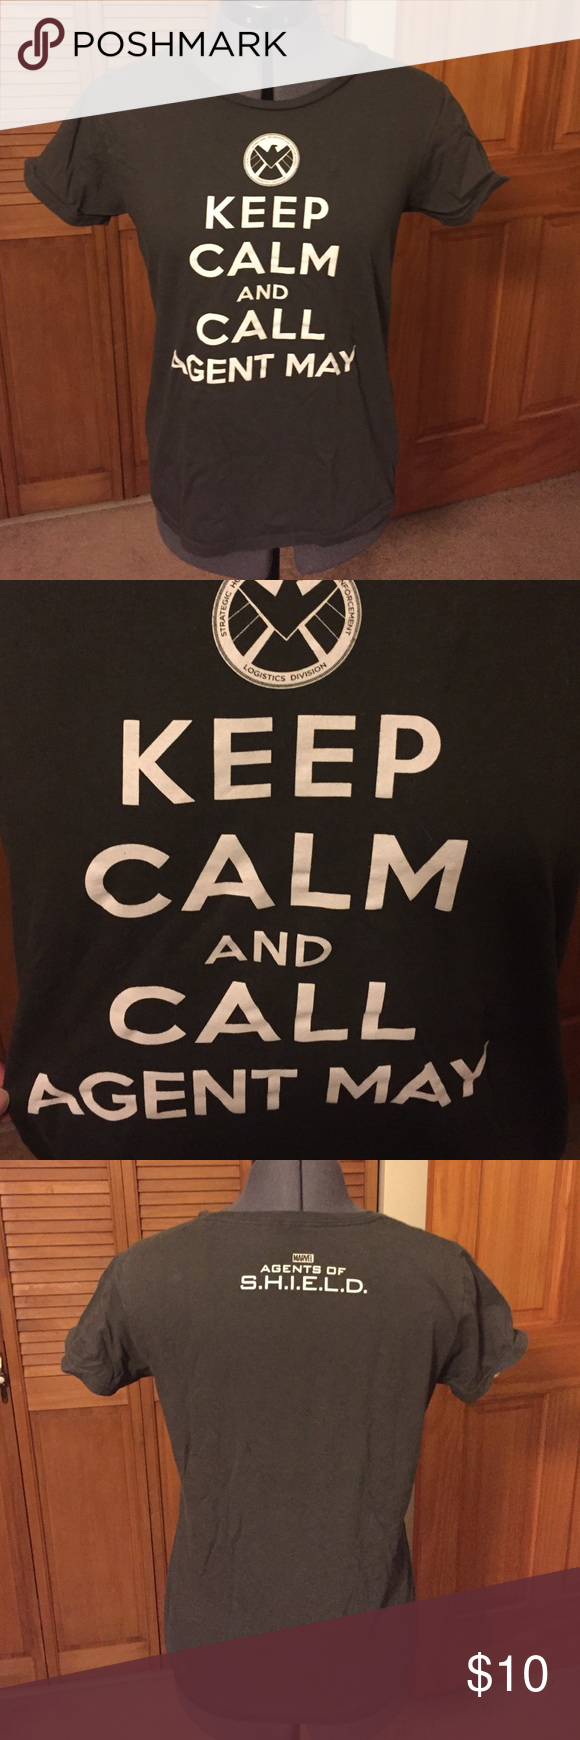 "Marvel Agent's of S.H.I.E.L.D. Agent May T-Shirt Gray t-shirt featuring logo for Marvel's Agents of S.H.I.E.L.D. logo with phrase ""keep calm and call Agent May"" immediately below it.  Back features the TV show's title card.  Shirt is from Marvel booth at New York Comic Con, only available at conventions.  Very good condition, no visible signs of wear. Marvel Tops Tees - Short Sleeve"